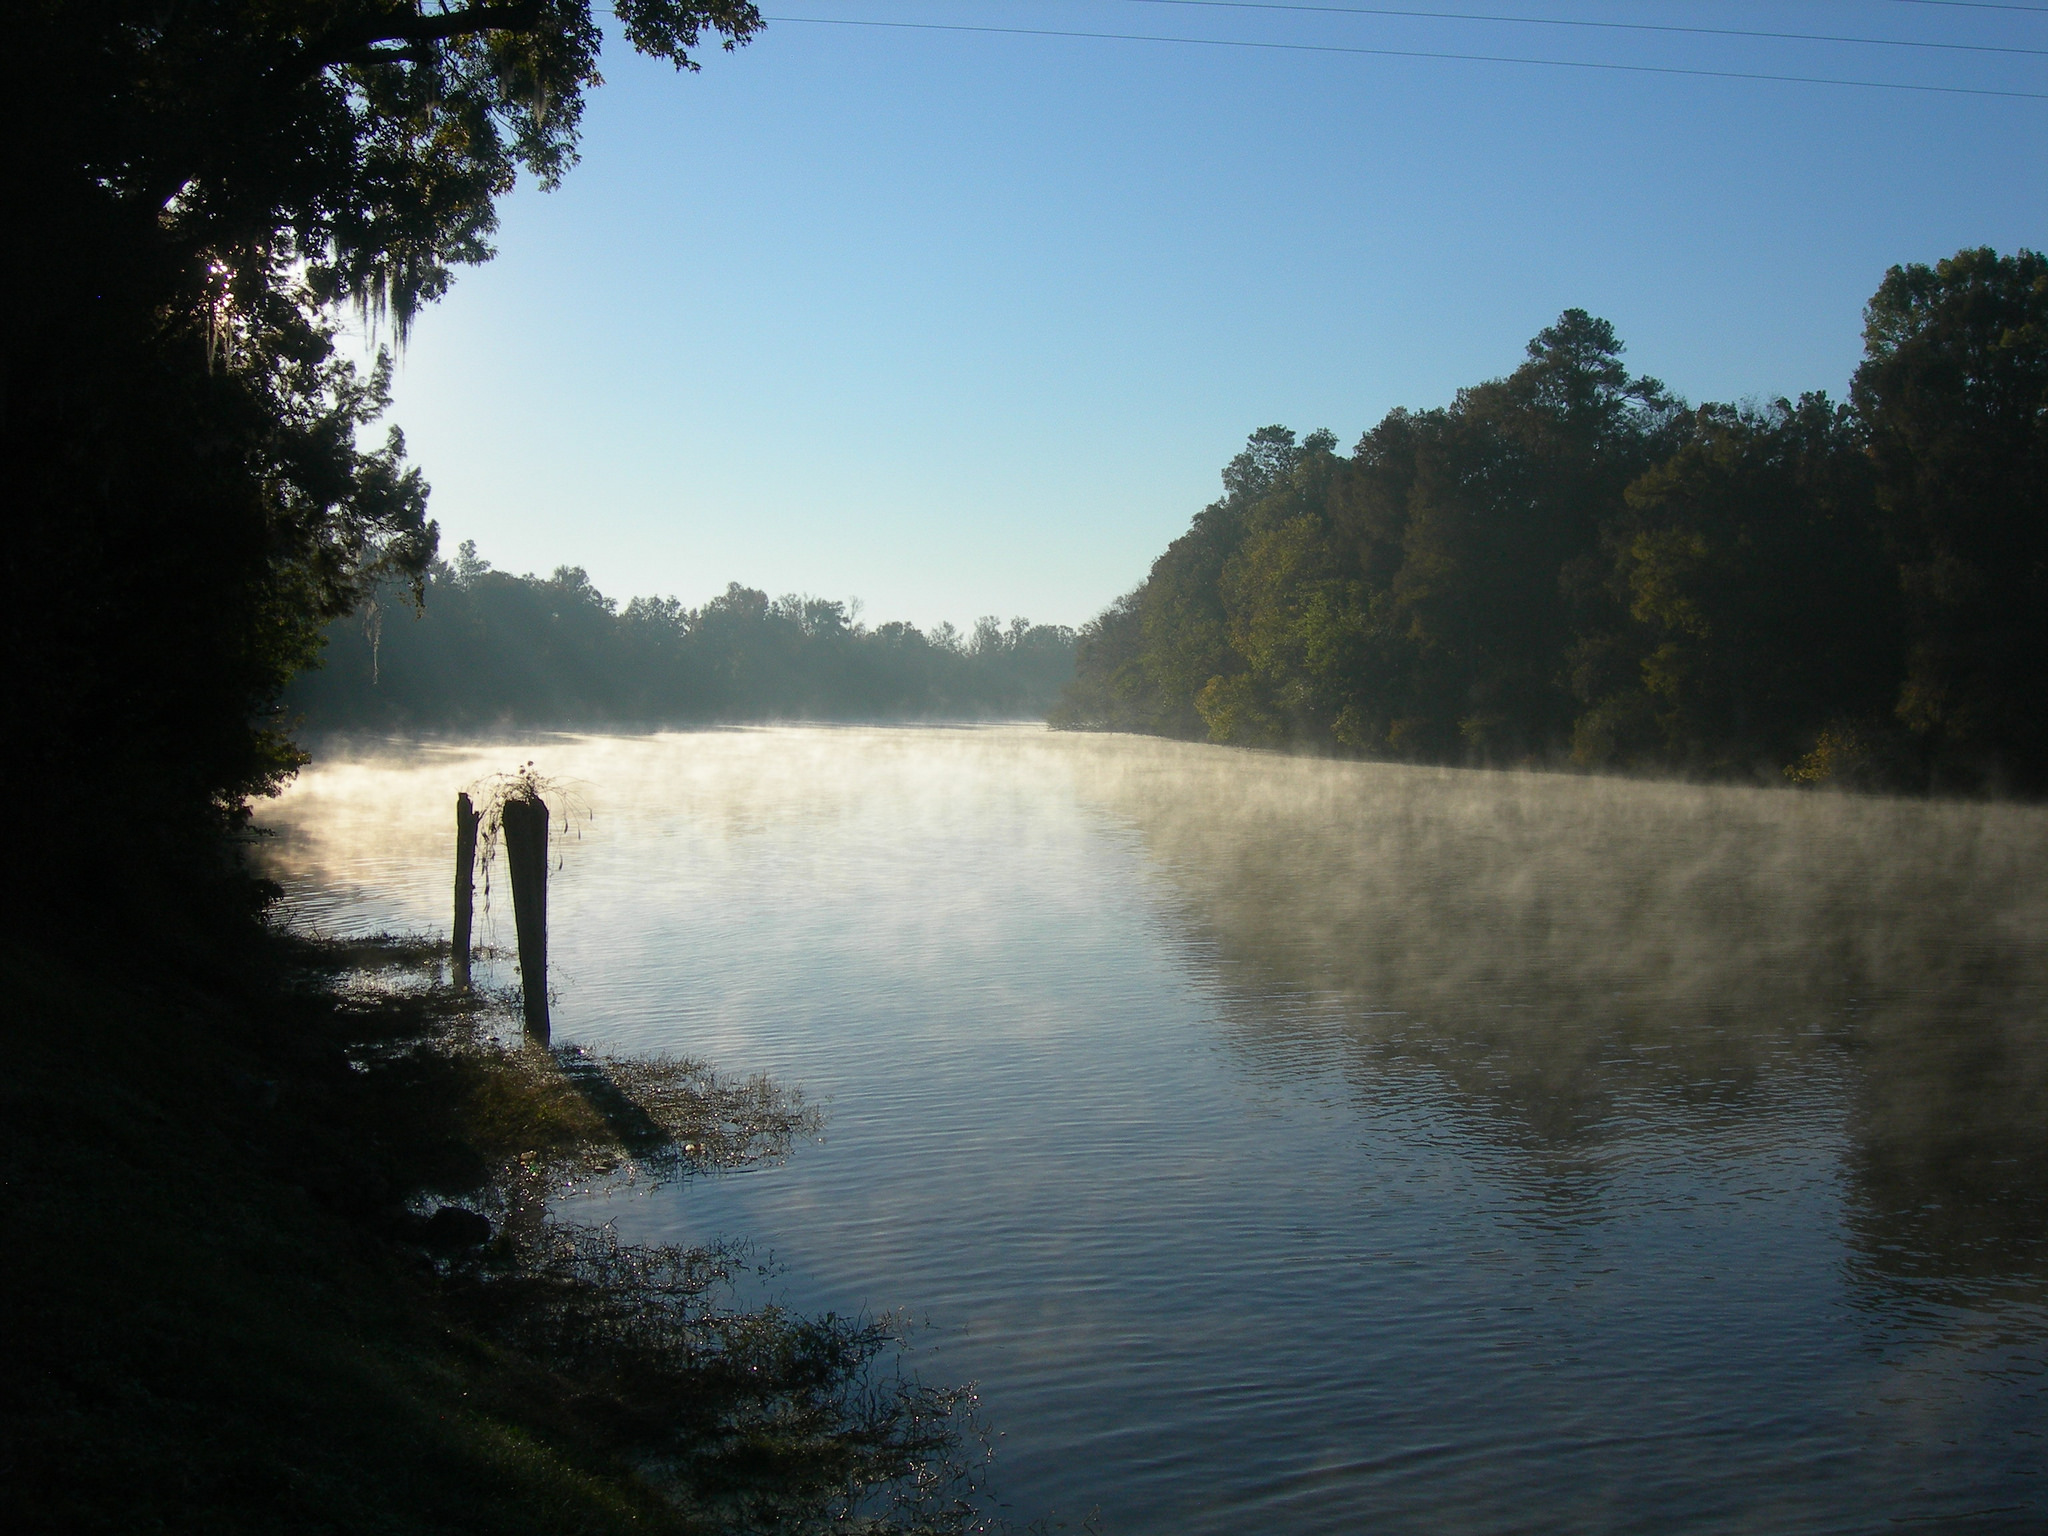 cape fear river drowning death and dangers north carolina